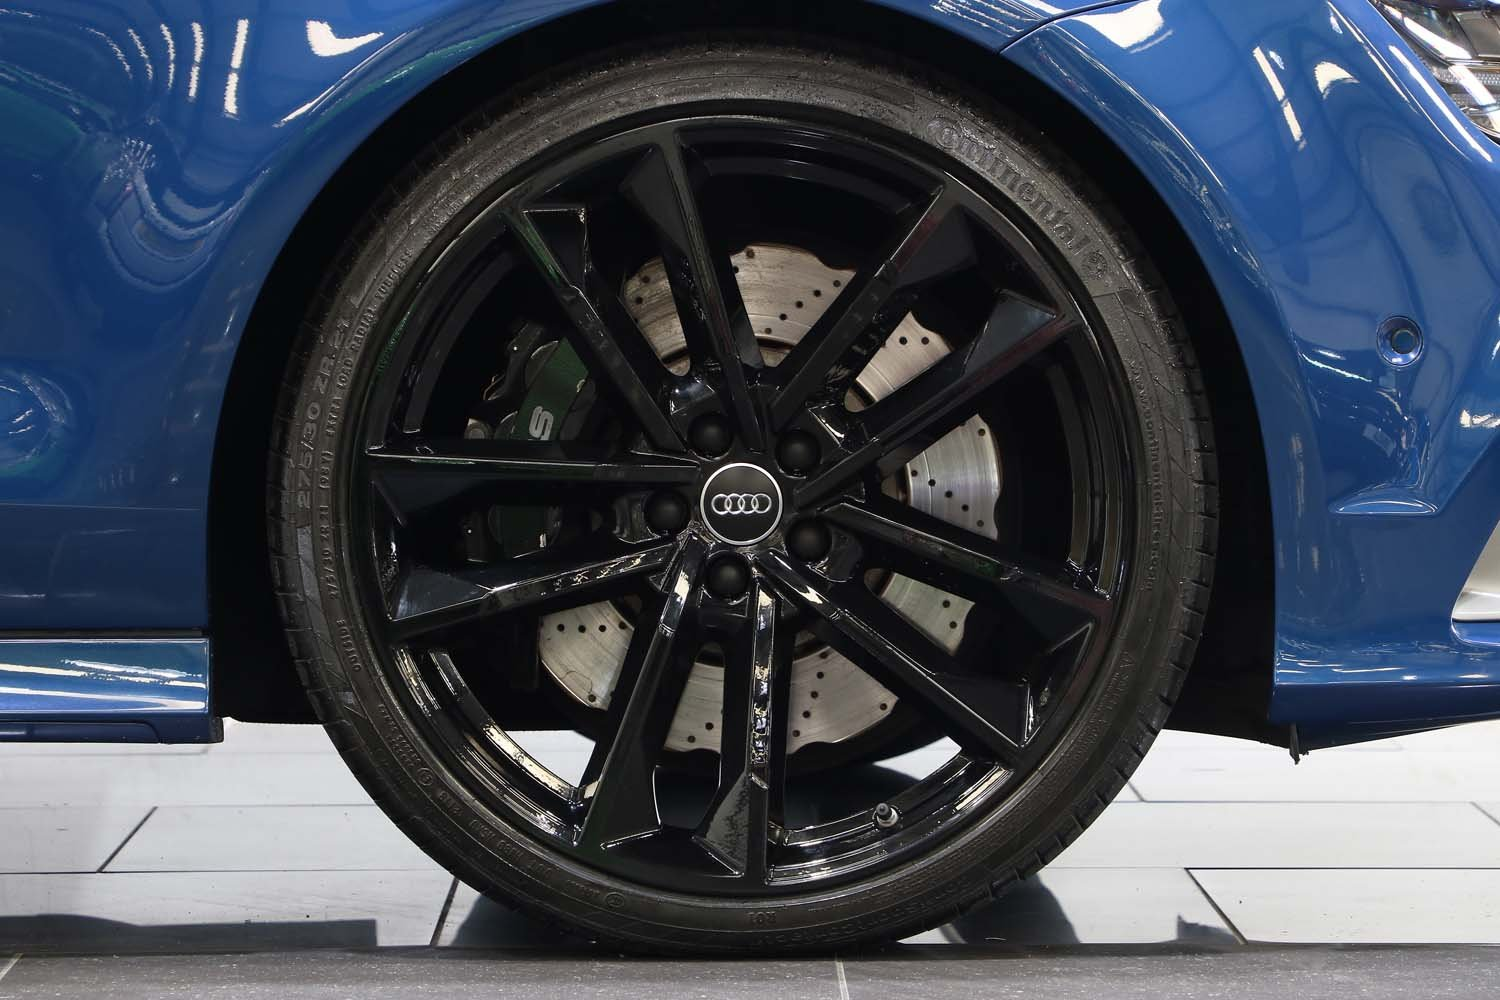 2016 66 AUDI RS7 PERFORMANCE SPORTBACK 4.0 TFSI QUATTRO S TRONIC For Sale (picture 3 of 6)